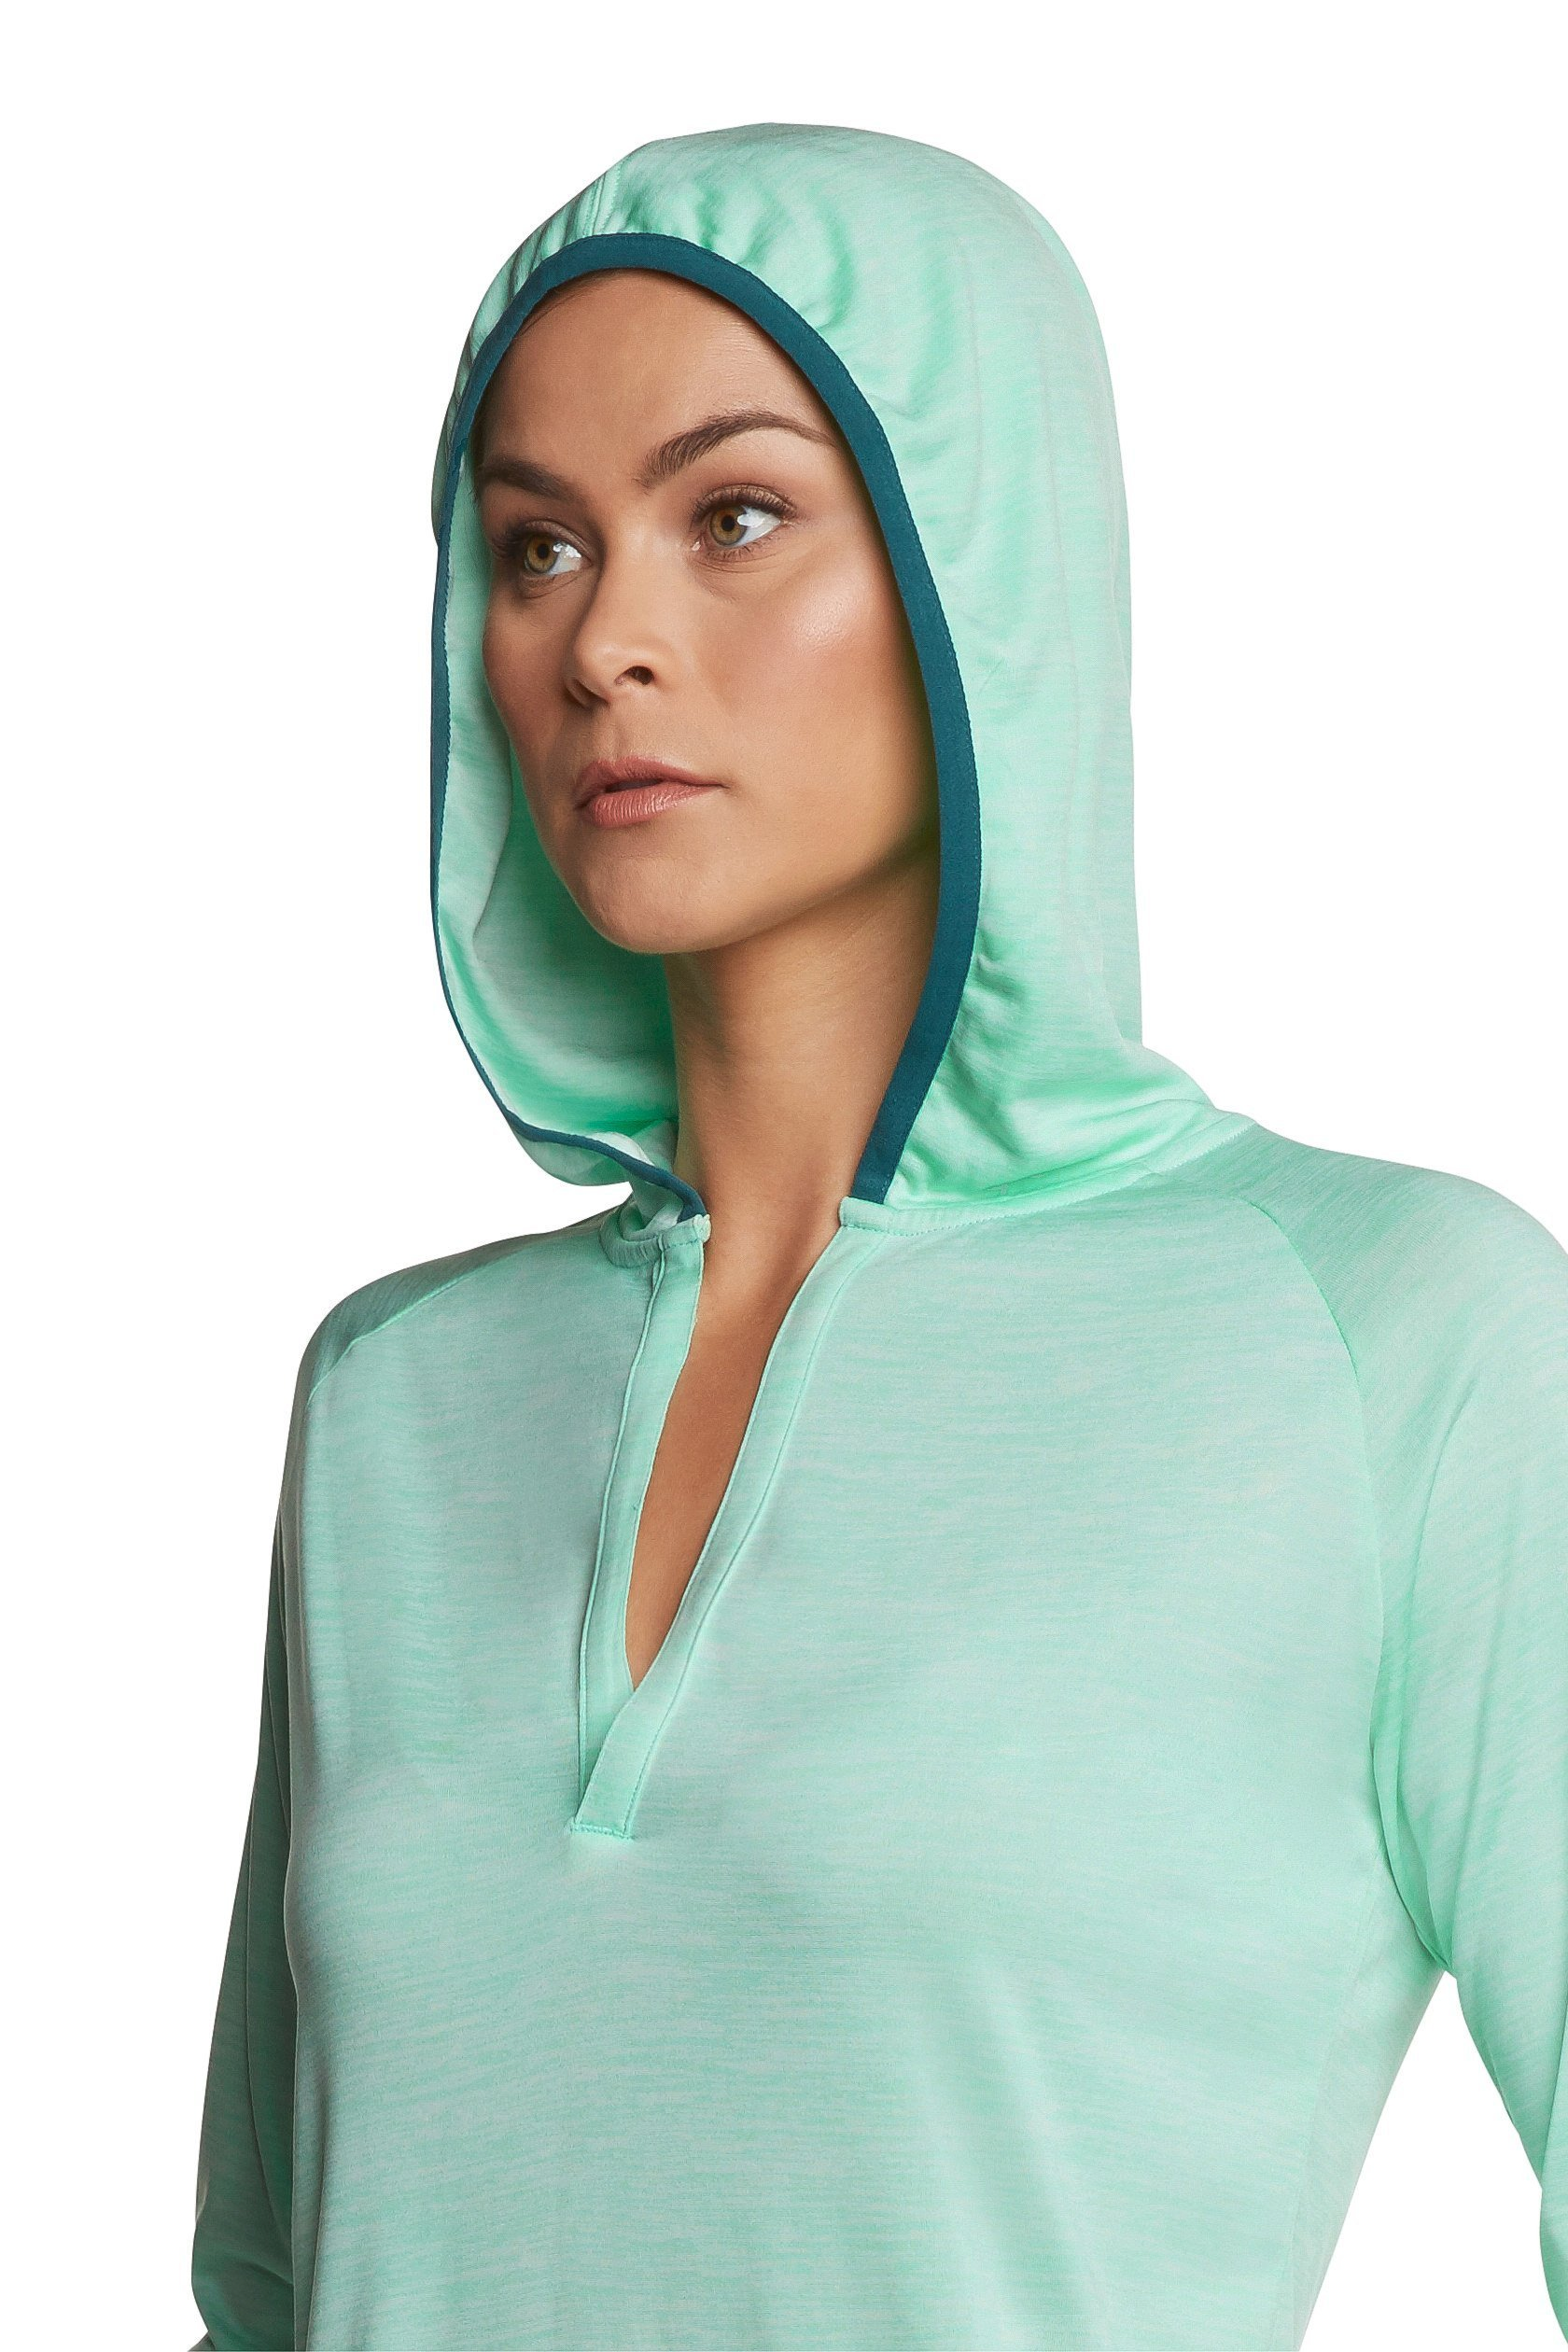 Jolt Gear Hoodies for Women - Pullover Hoodie Running Top - Light Weight Dry Fit Fabric - FREE TOWEL INCLUDED!